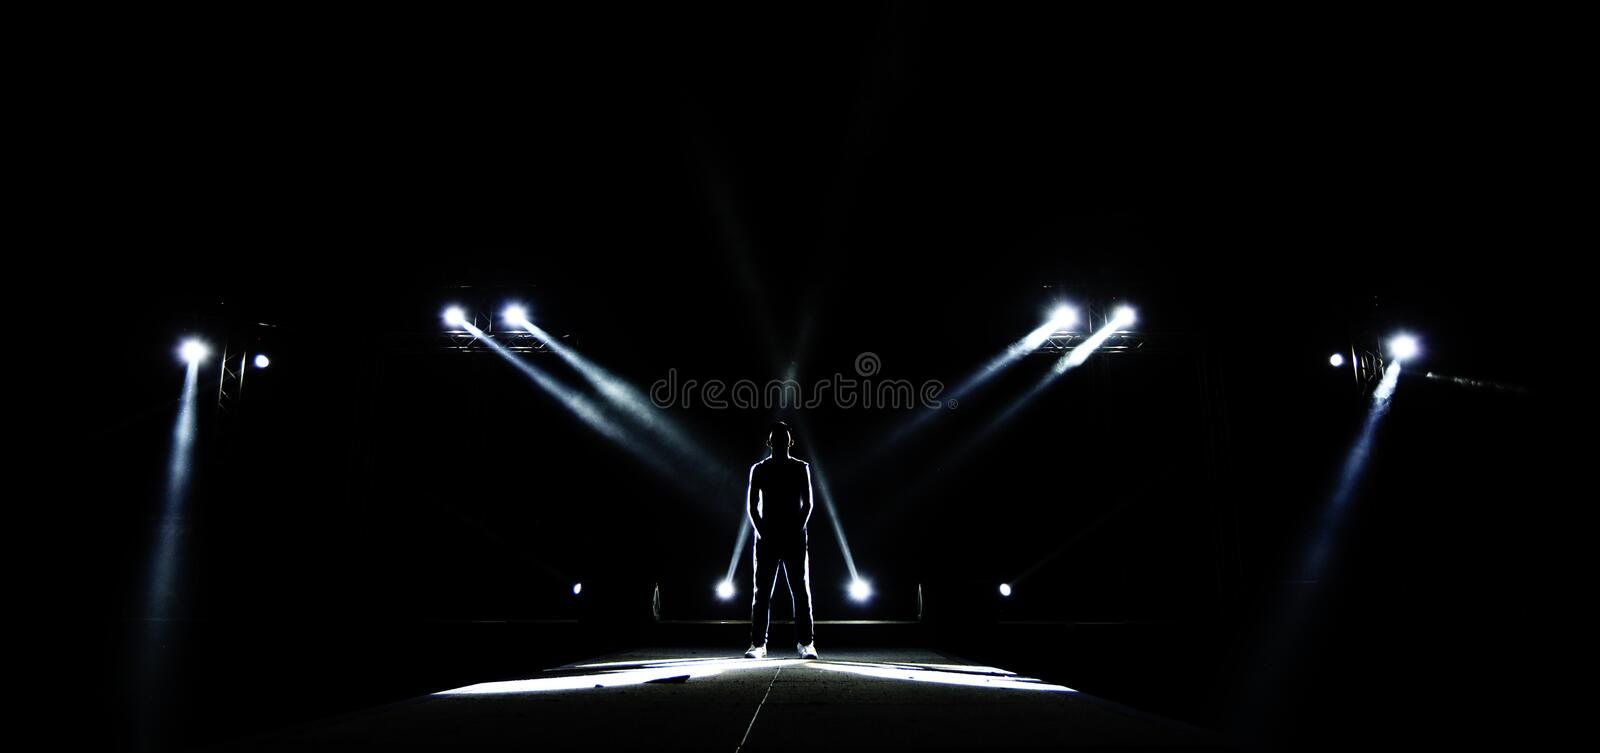 Silhouette of Male surround with Light, Dark Low Exposure, concept Unique Confidence royalty free stock photography